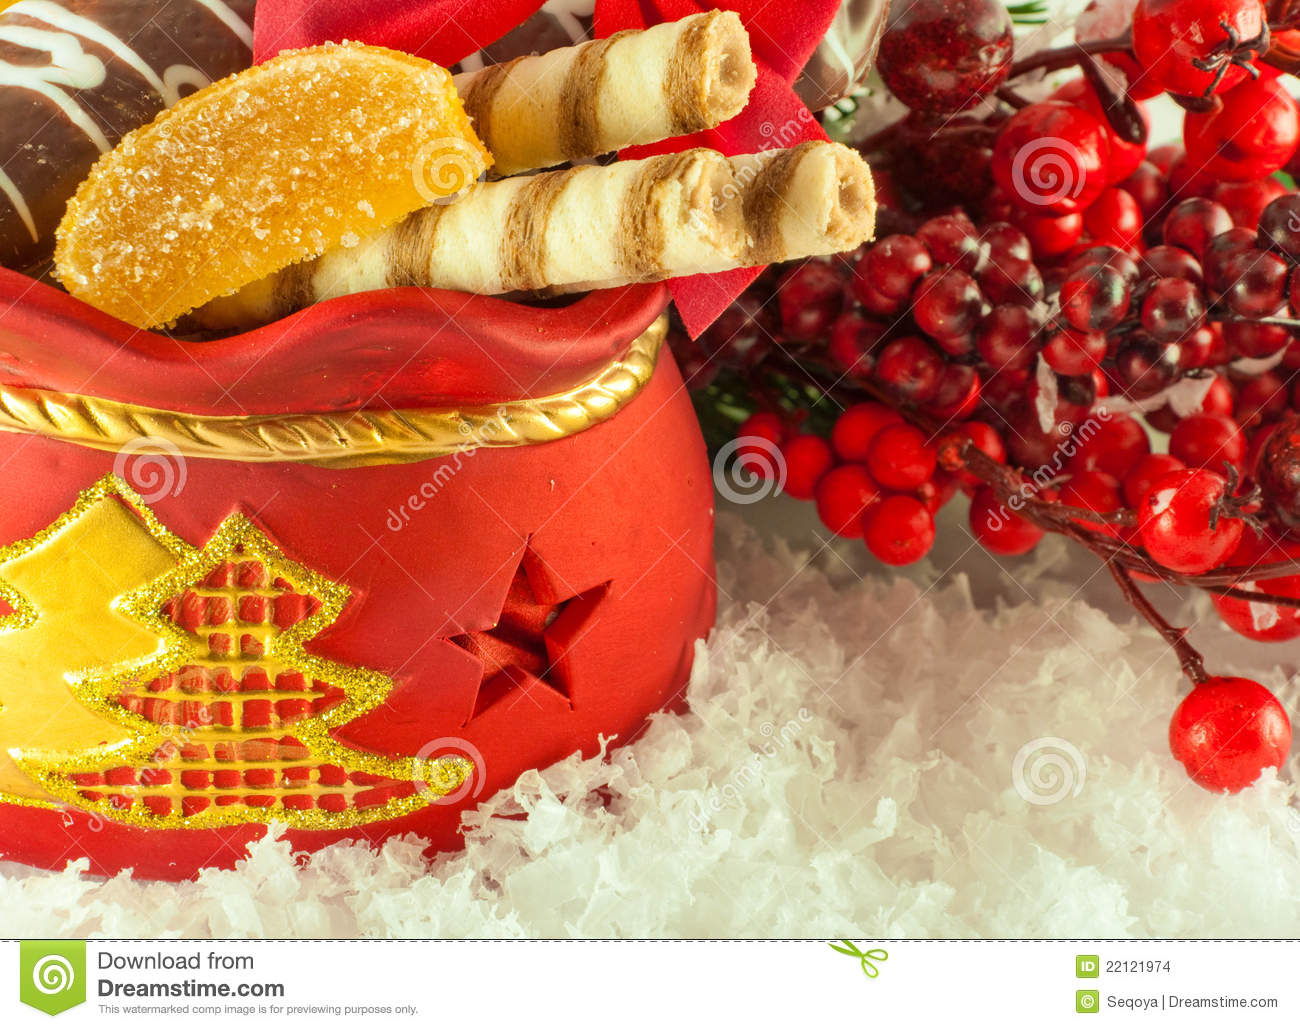 Christmas bag with gifts cookies and fruit candy a fur tree branch